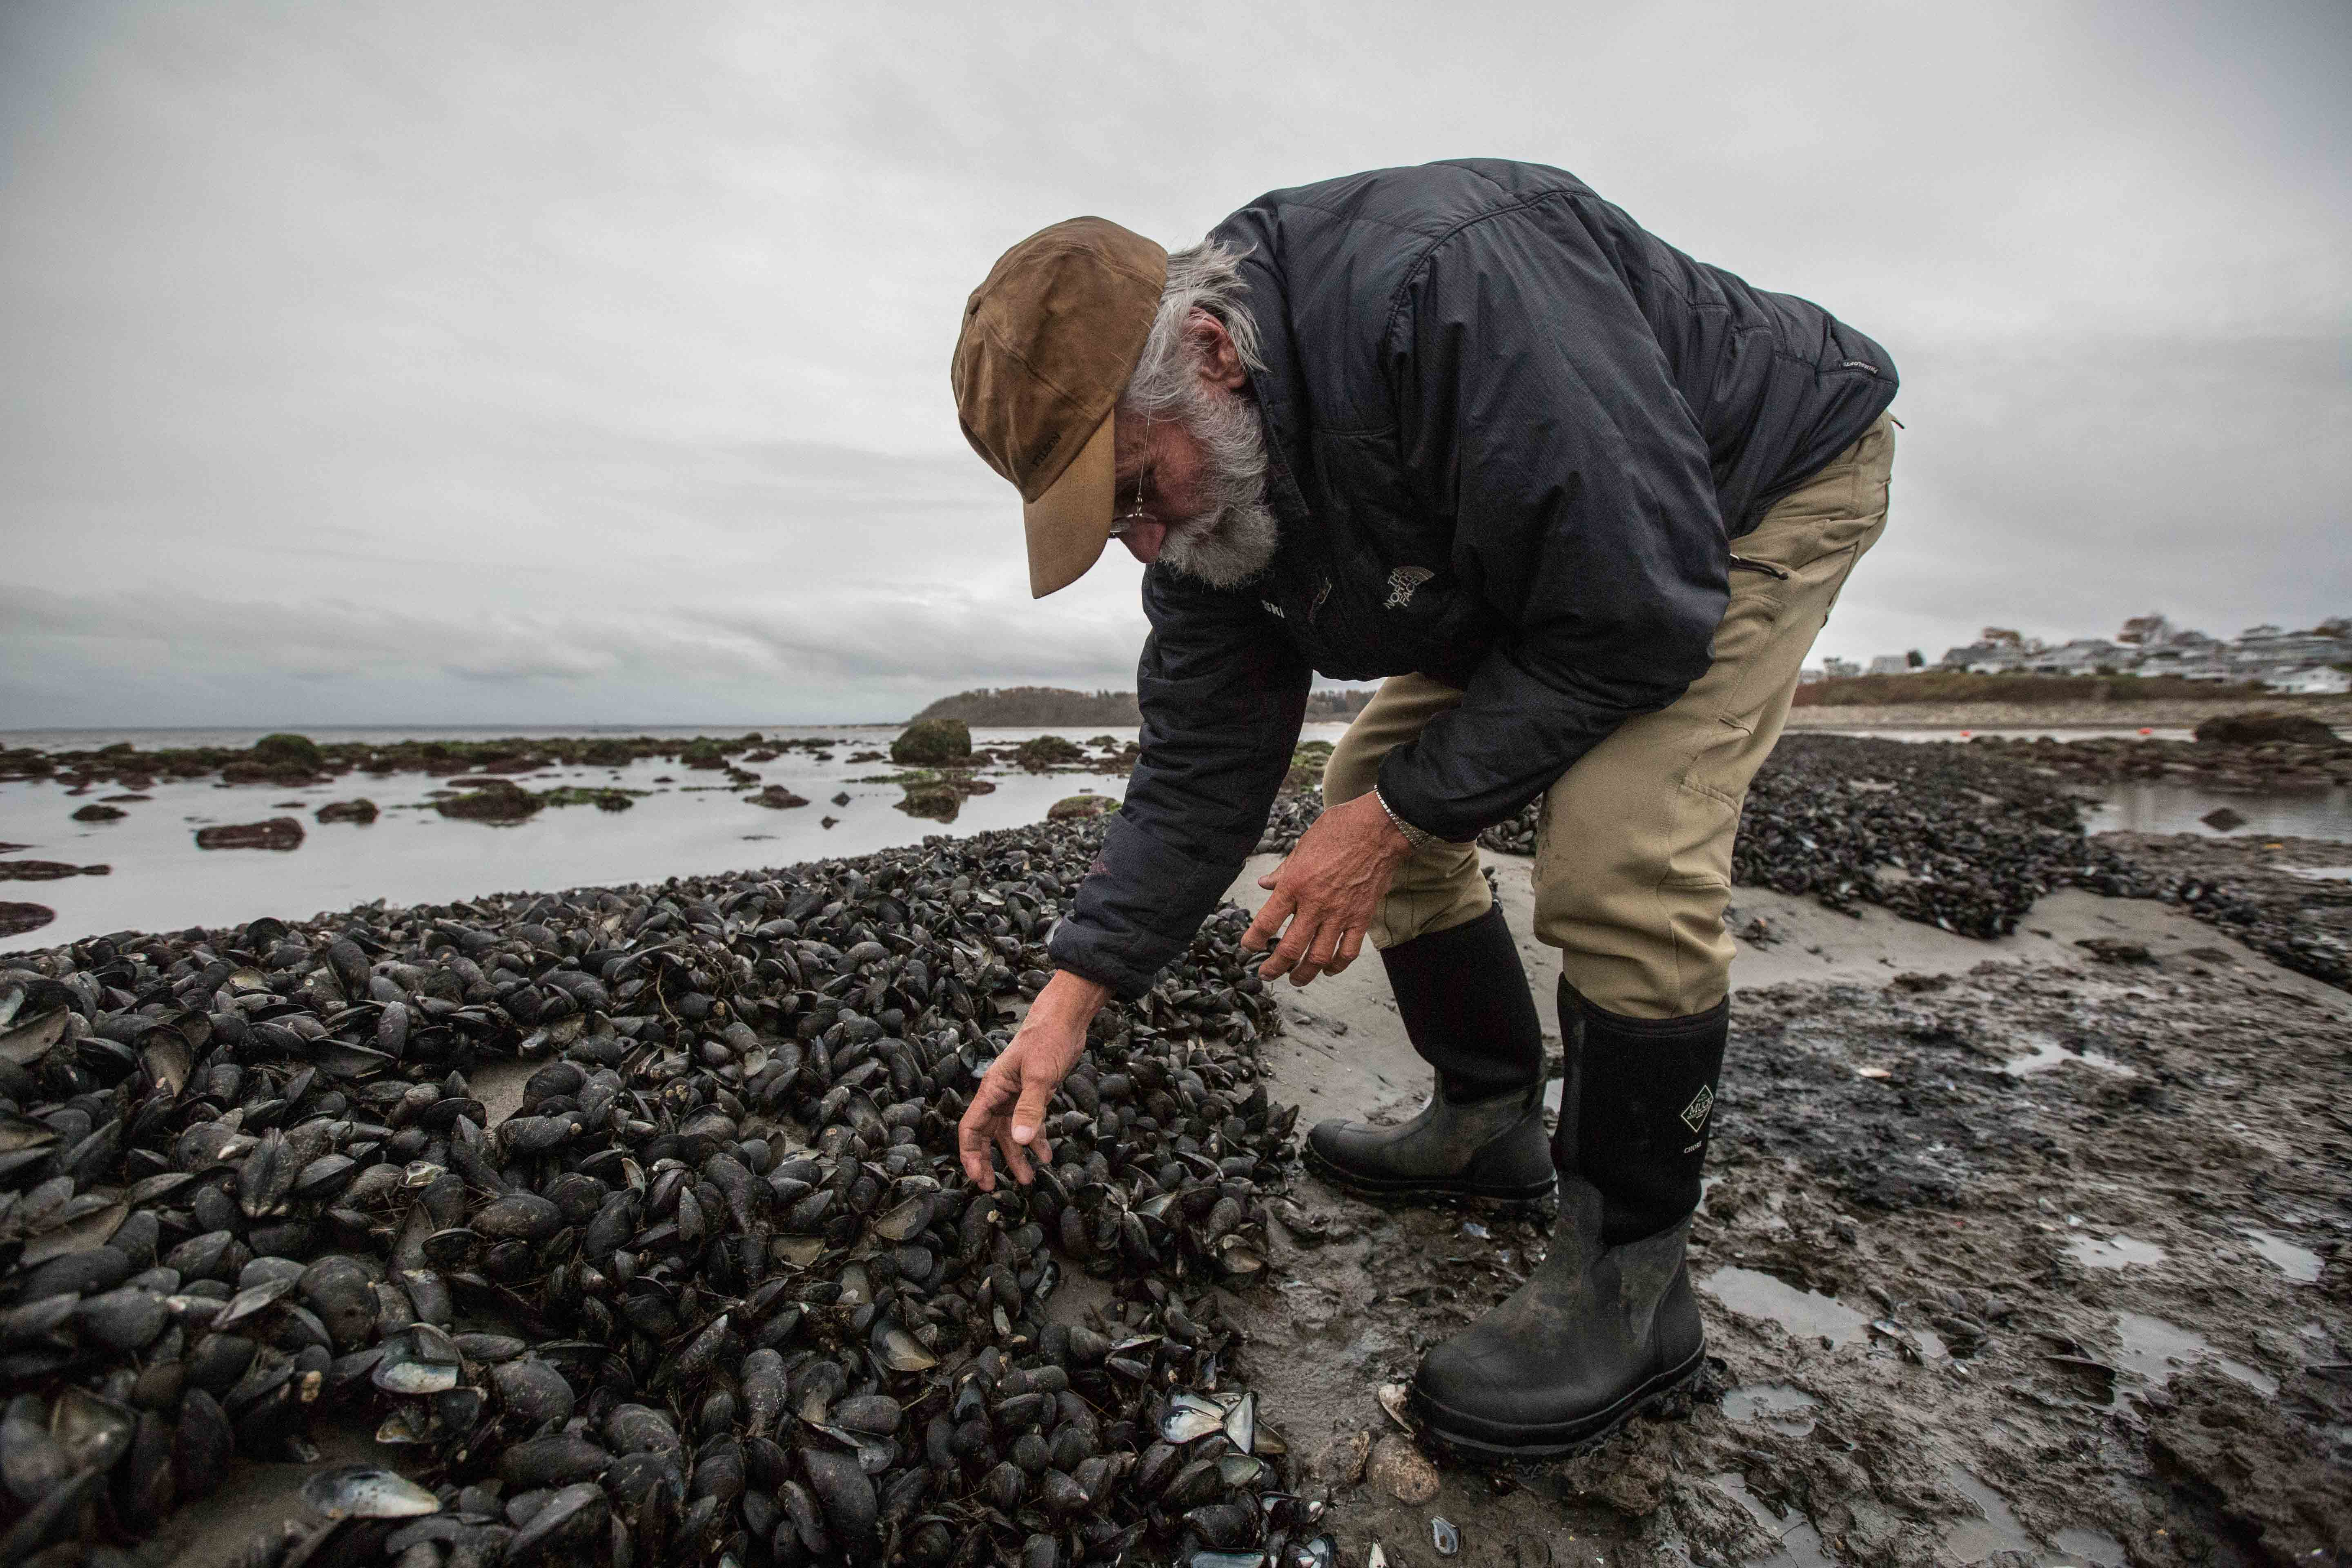 Geoff Walker, a water fowler and conservationist who has long dedicated his time to helping preserve the Great Marsh, examines a healthy bed of mussels. He's working with a team to study water conditions that are conducive to mussel growth. Mussel reefs can serve as natural storm buffers and help protect the coastline. (Photo by Coco McCabe/GroundTruth)